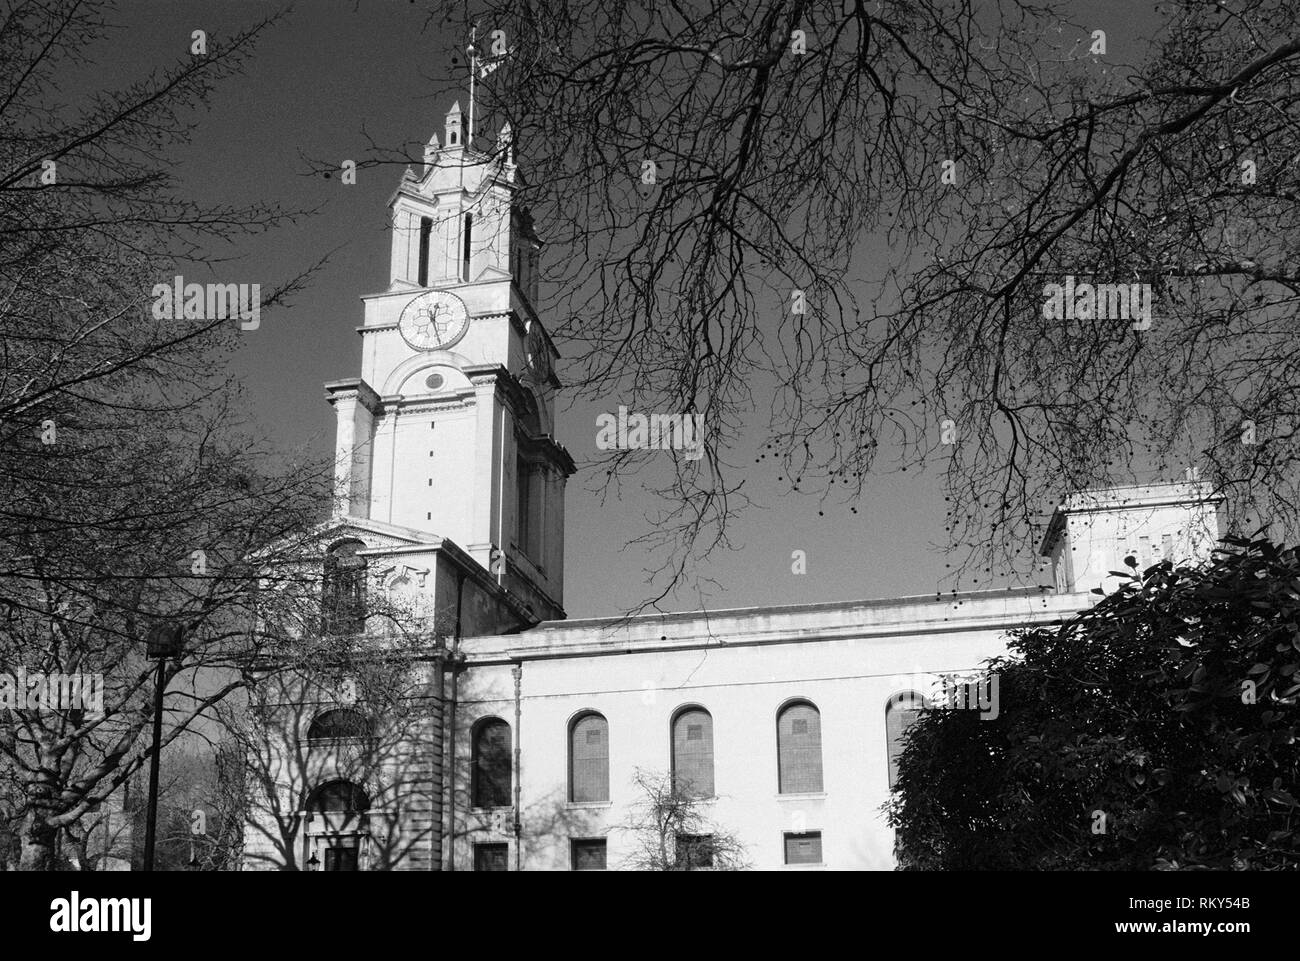 The Baroque St Anne's Church, Limehouse, East London UK, in winter - Stock Image